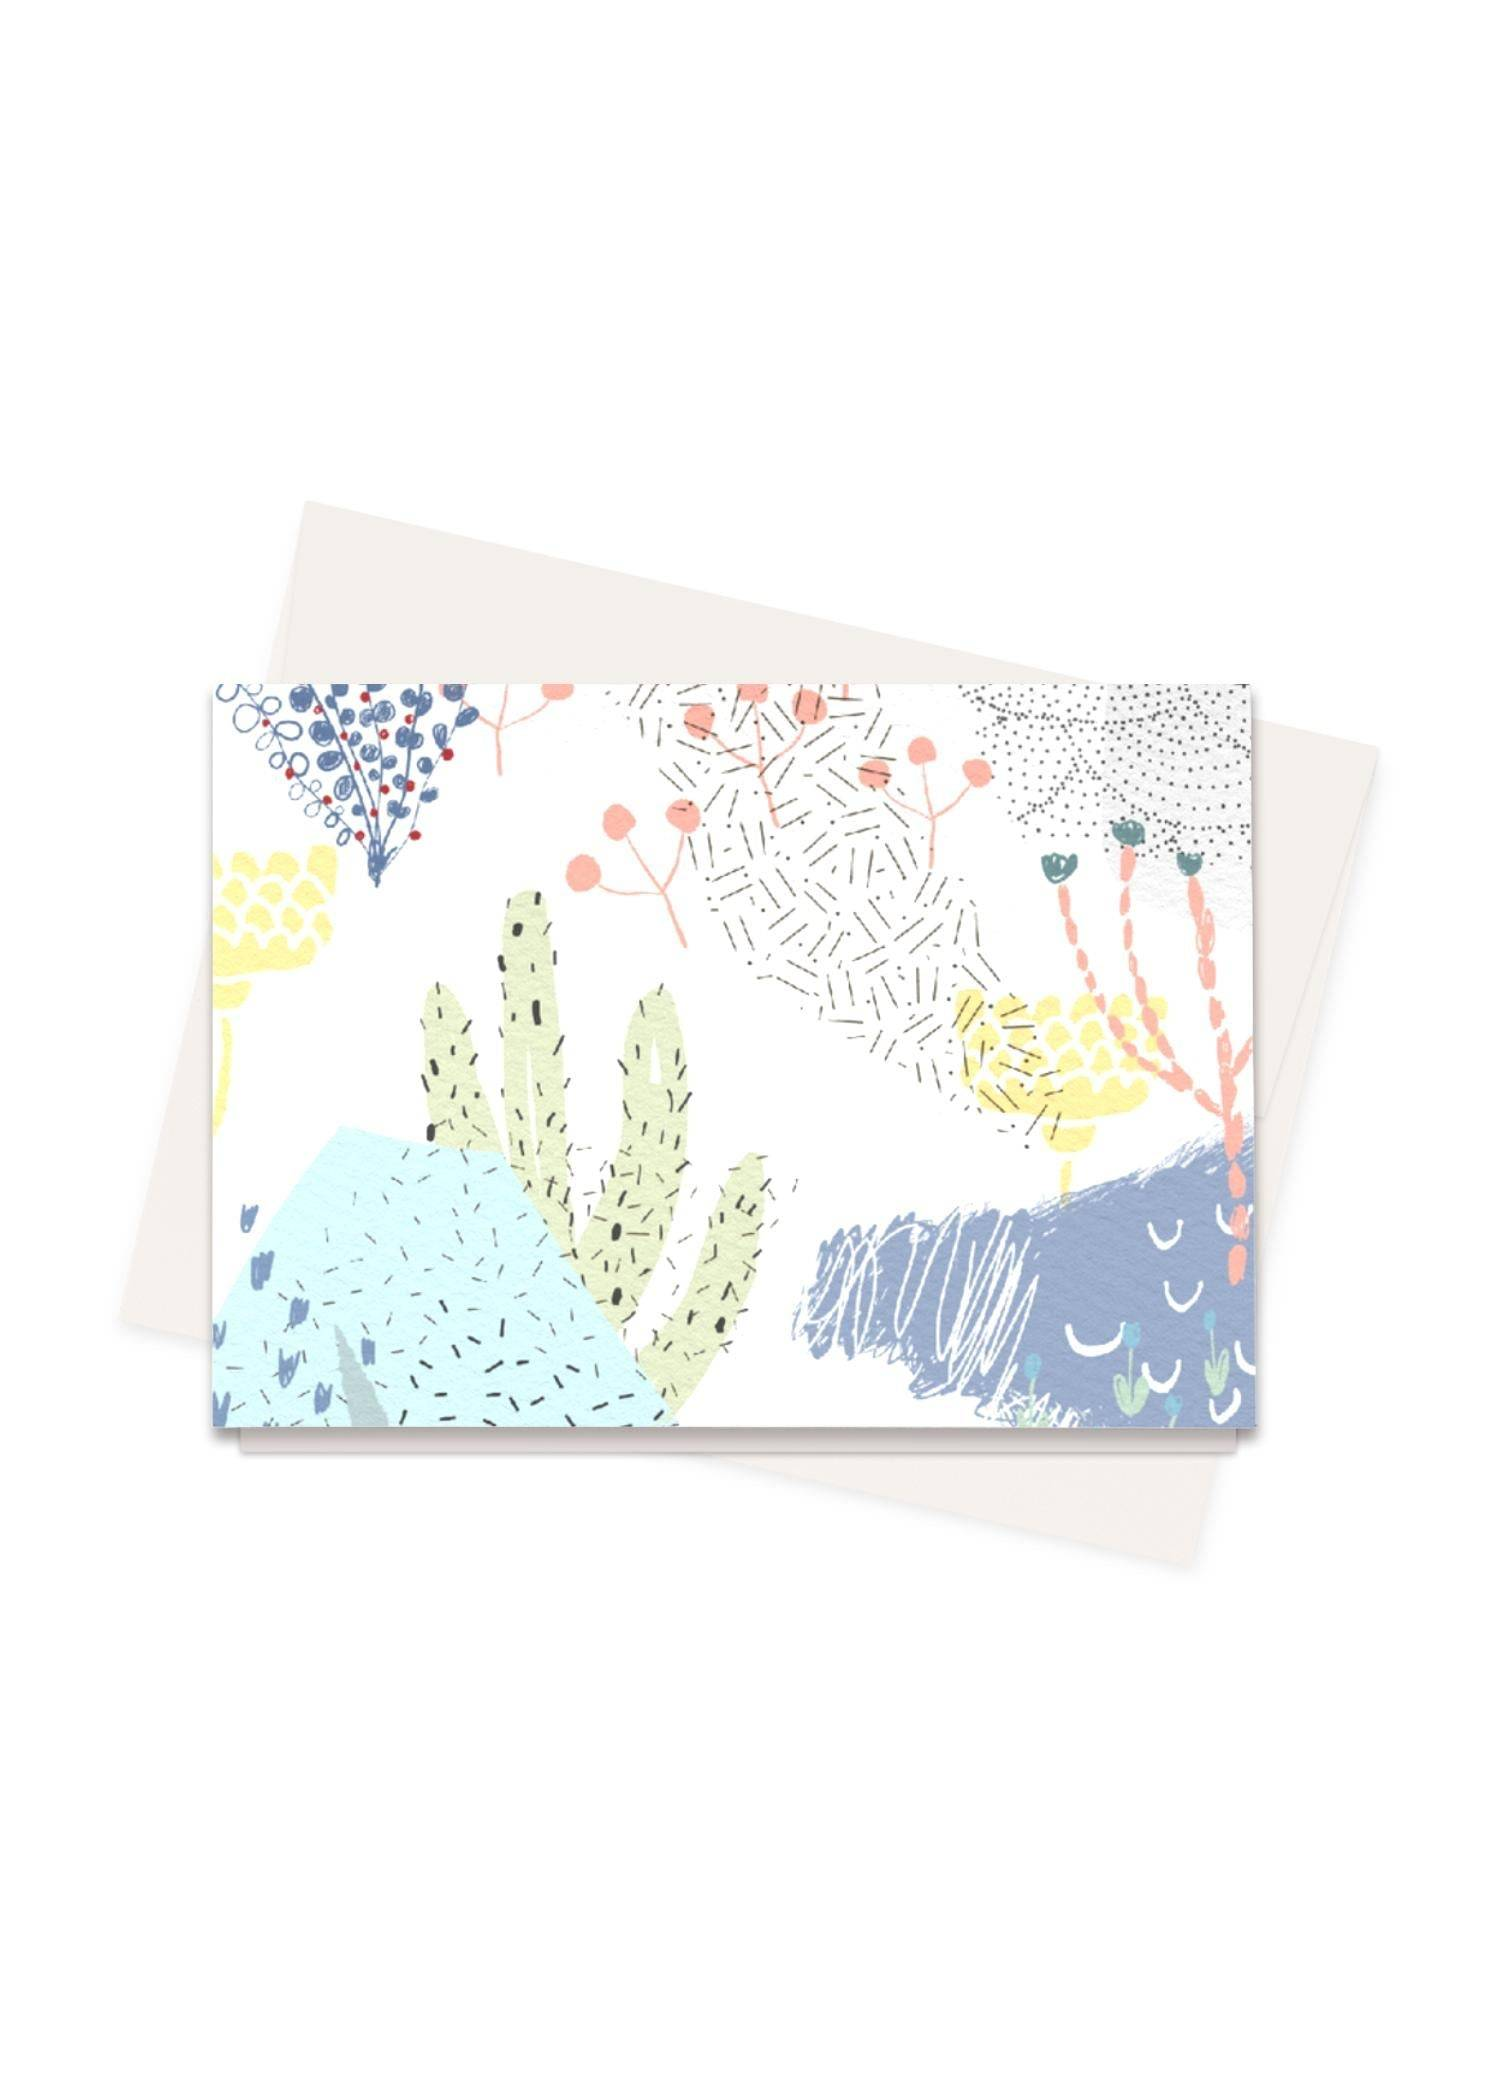 Vasula Greeting Cards Set - Abstract Garden by Vasula Original Artist  - Size: Set of 16